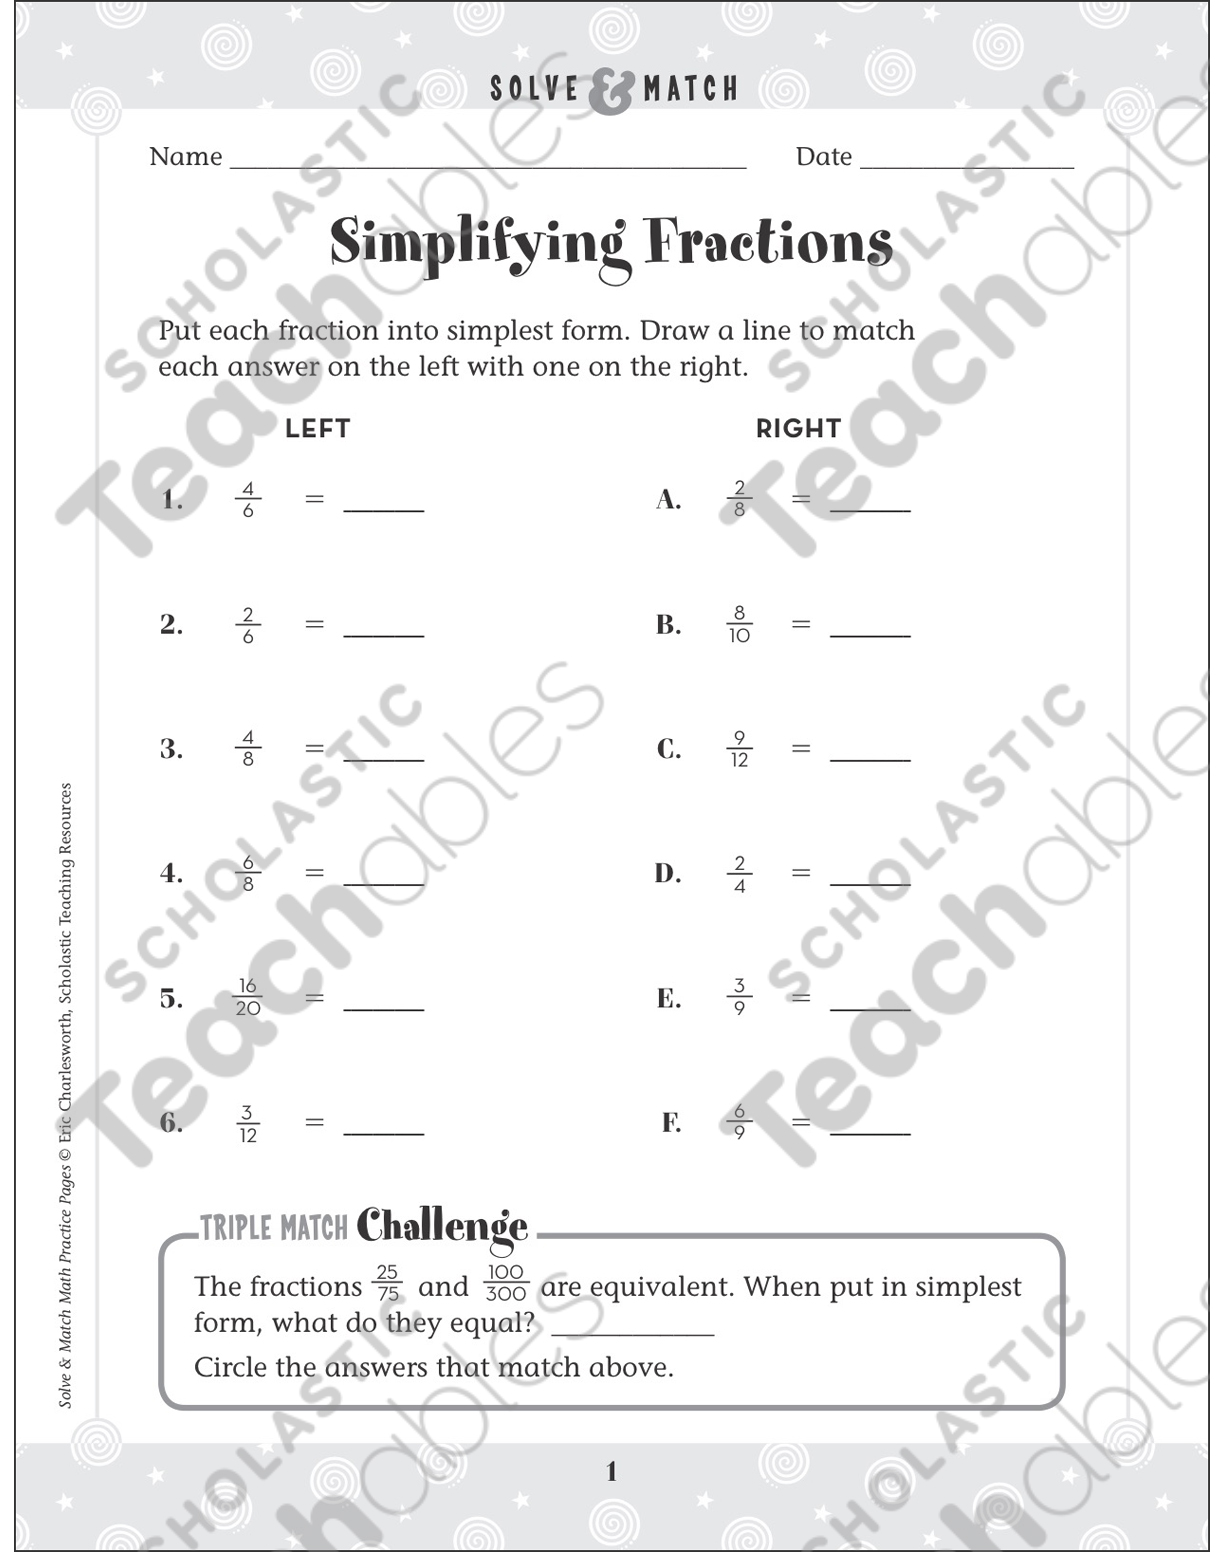 hight resolution of Simplifying Fractions: Solve \u0026 Match Math   Printable Skills Sheets